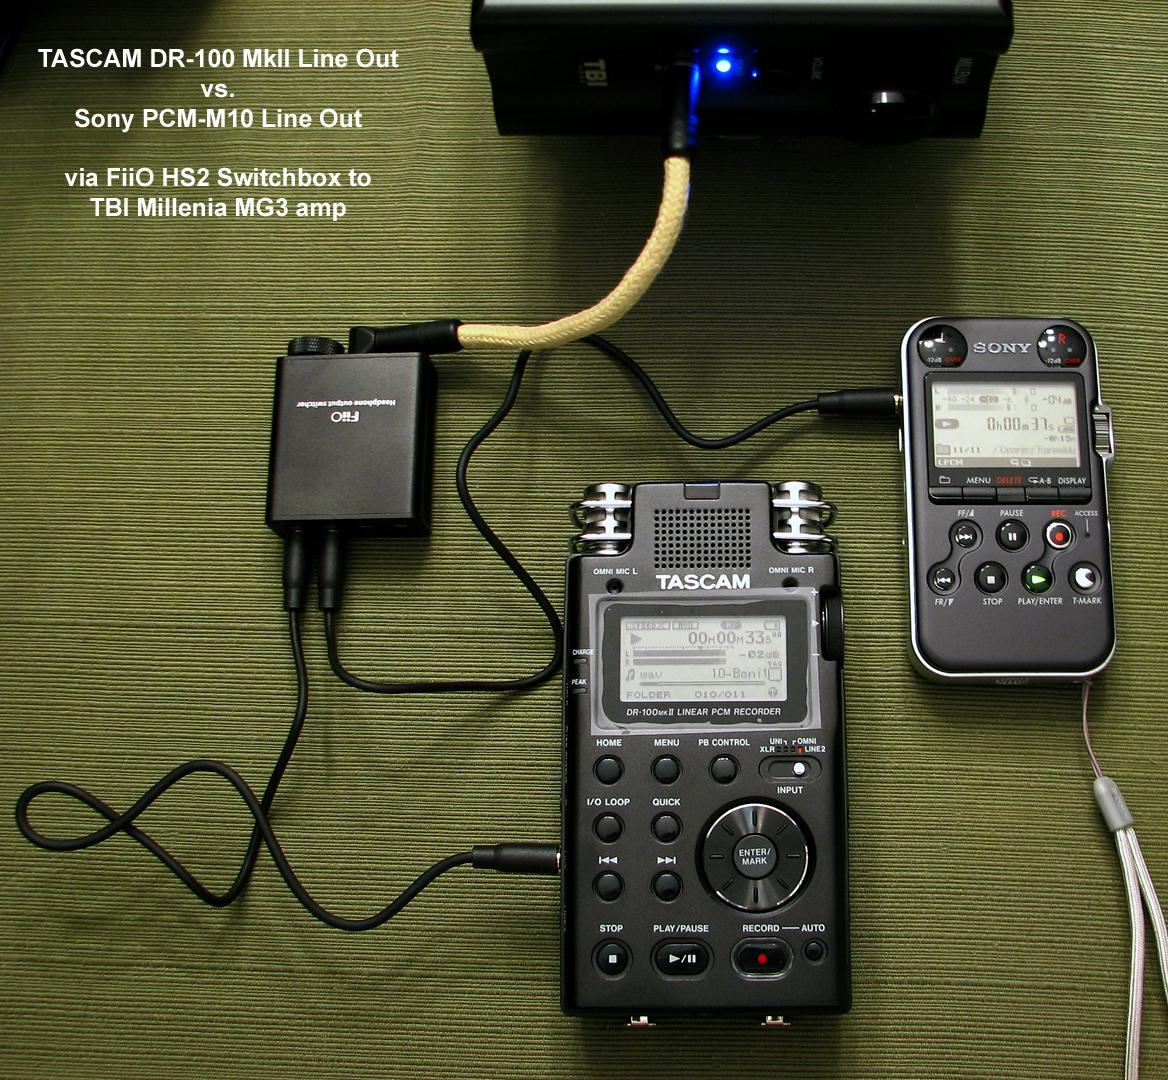 TASCAM (Teac) DR-100 Line Out vs. Sony PCM-M10 Line Out.  The Sony PCM-M10 wins!